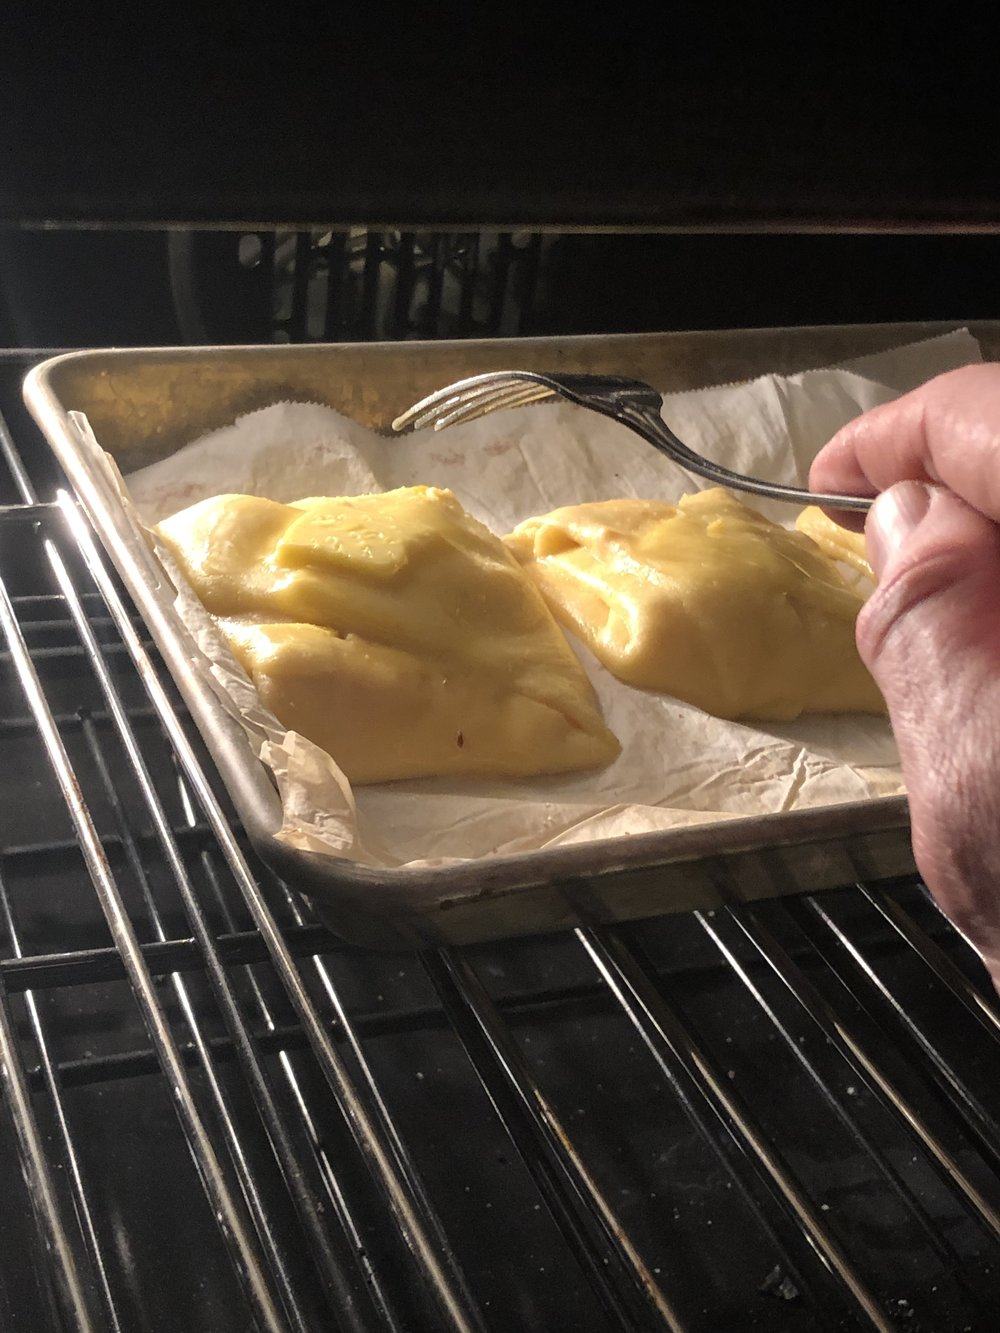 Melt some butter on top at 6 min. Cool for another 6.